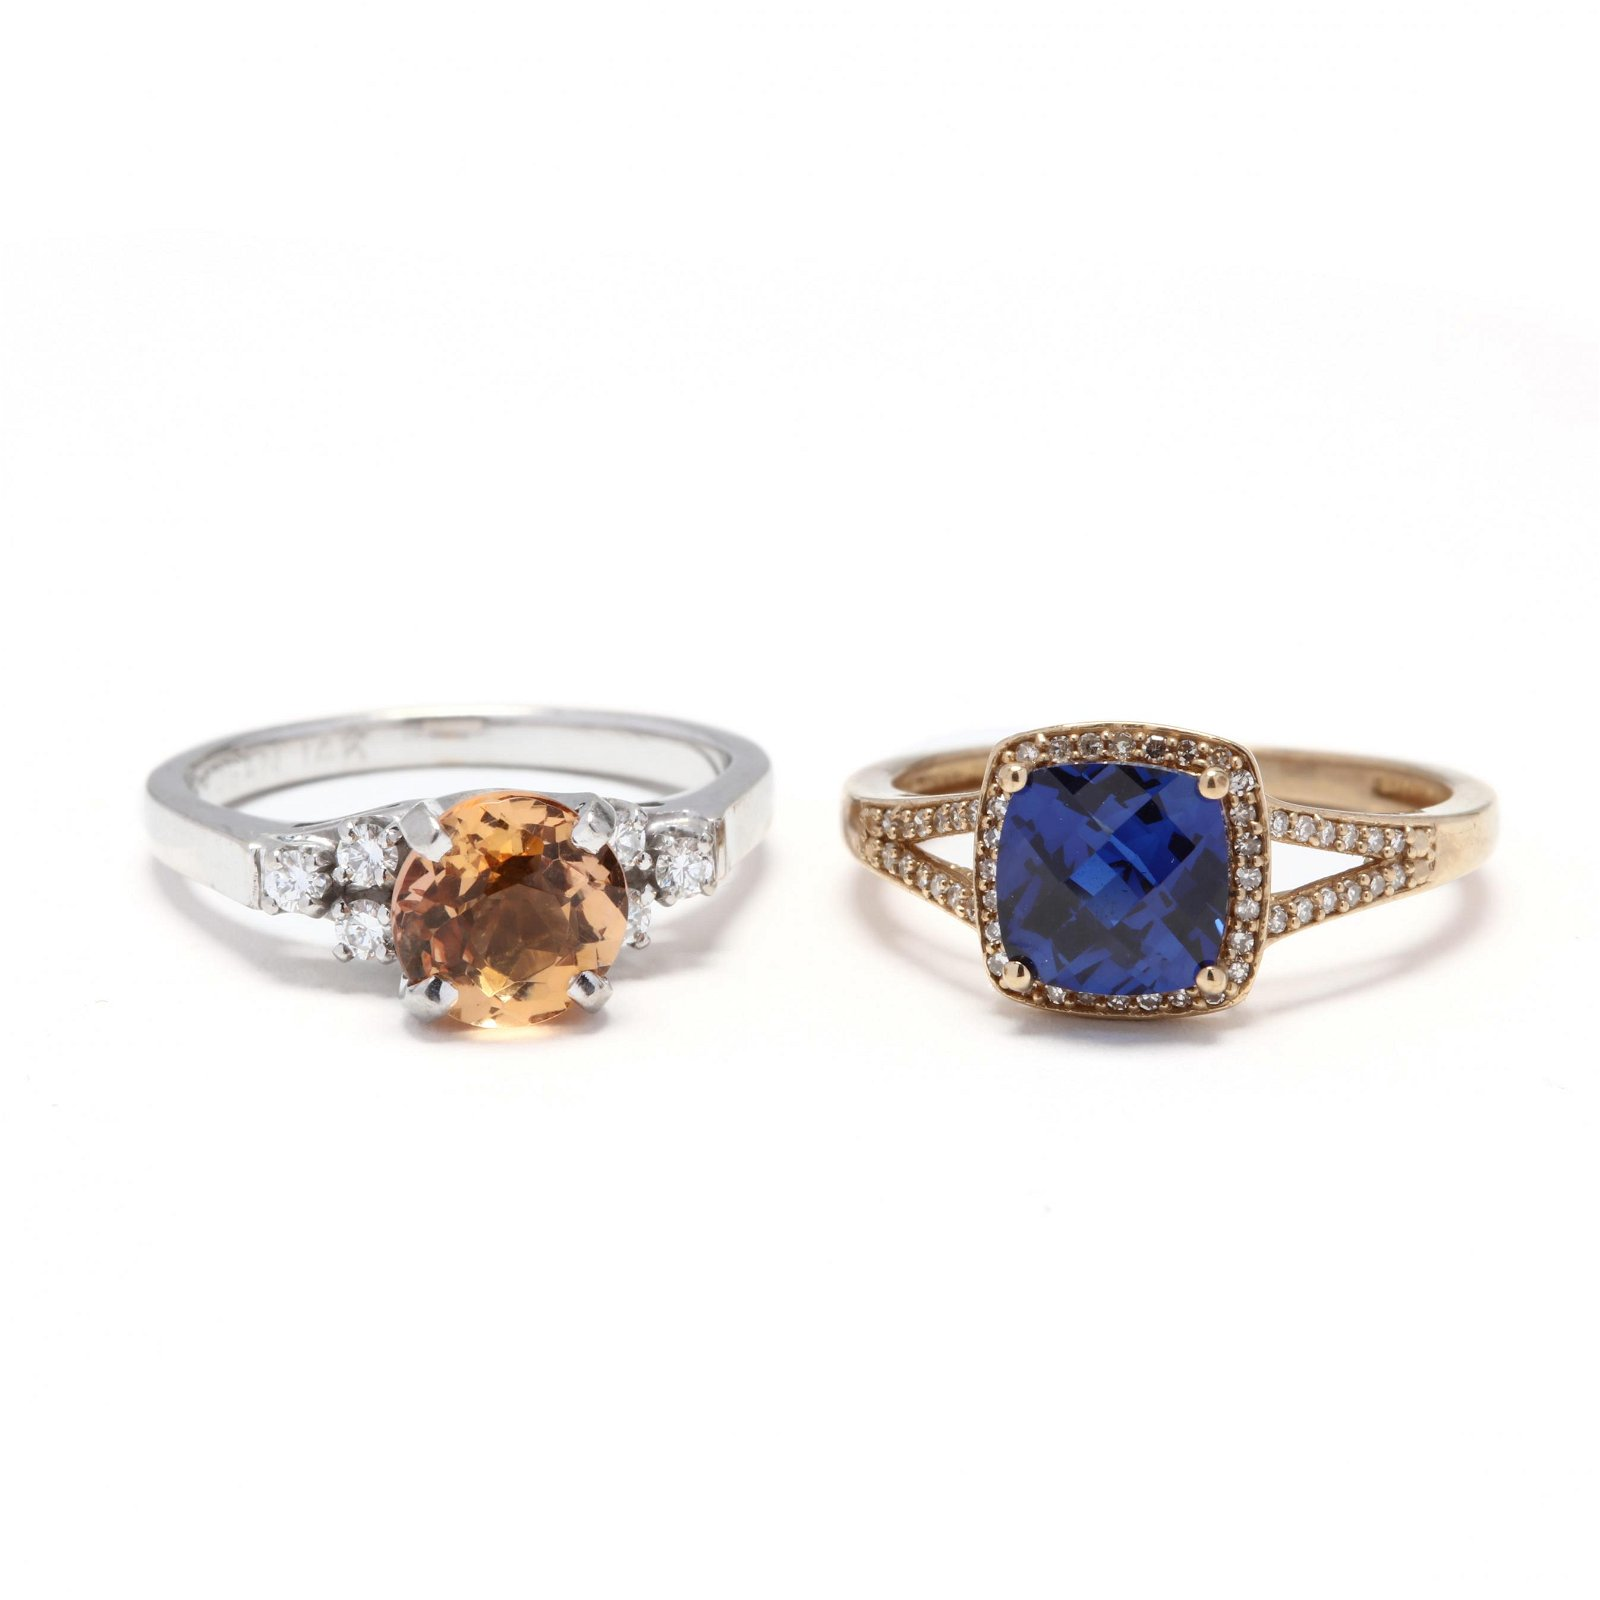 Two Gold, Diamond, and Gem-Set Rings